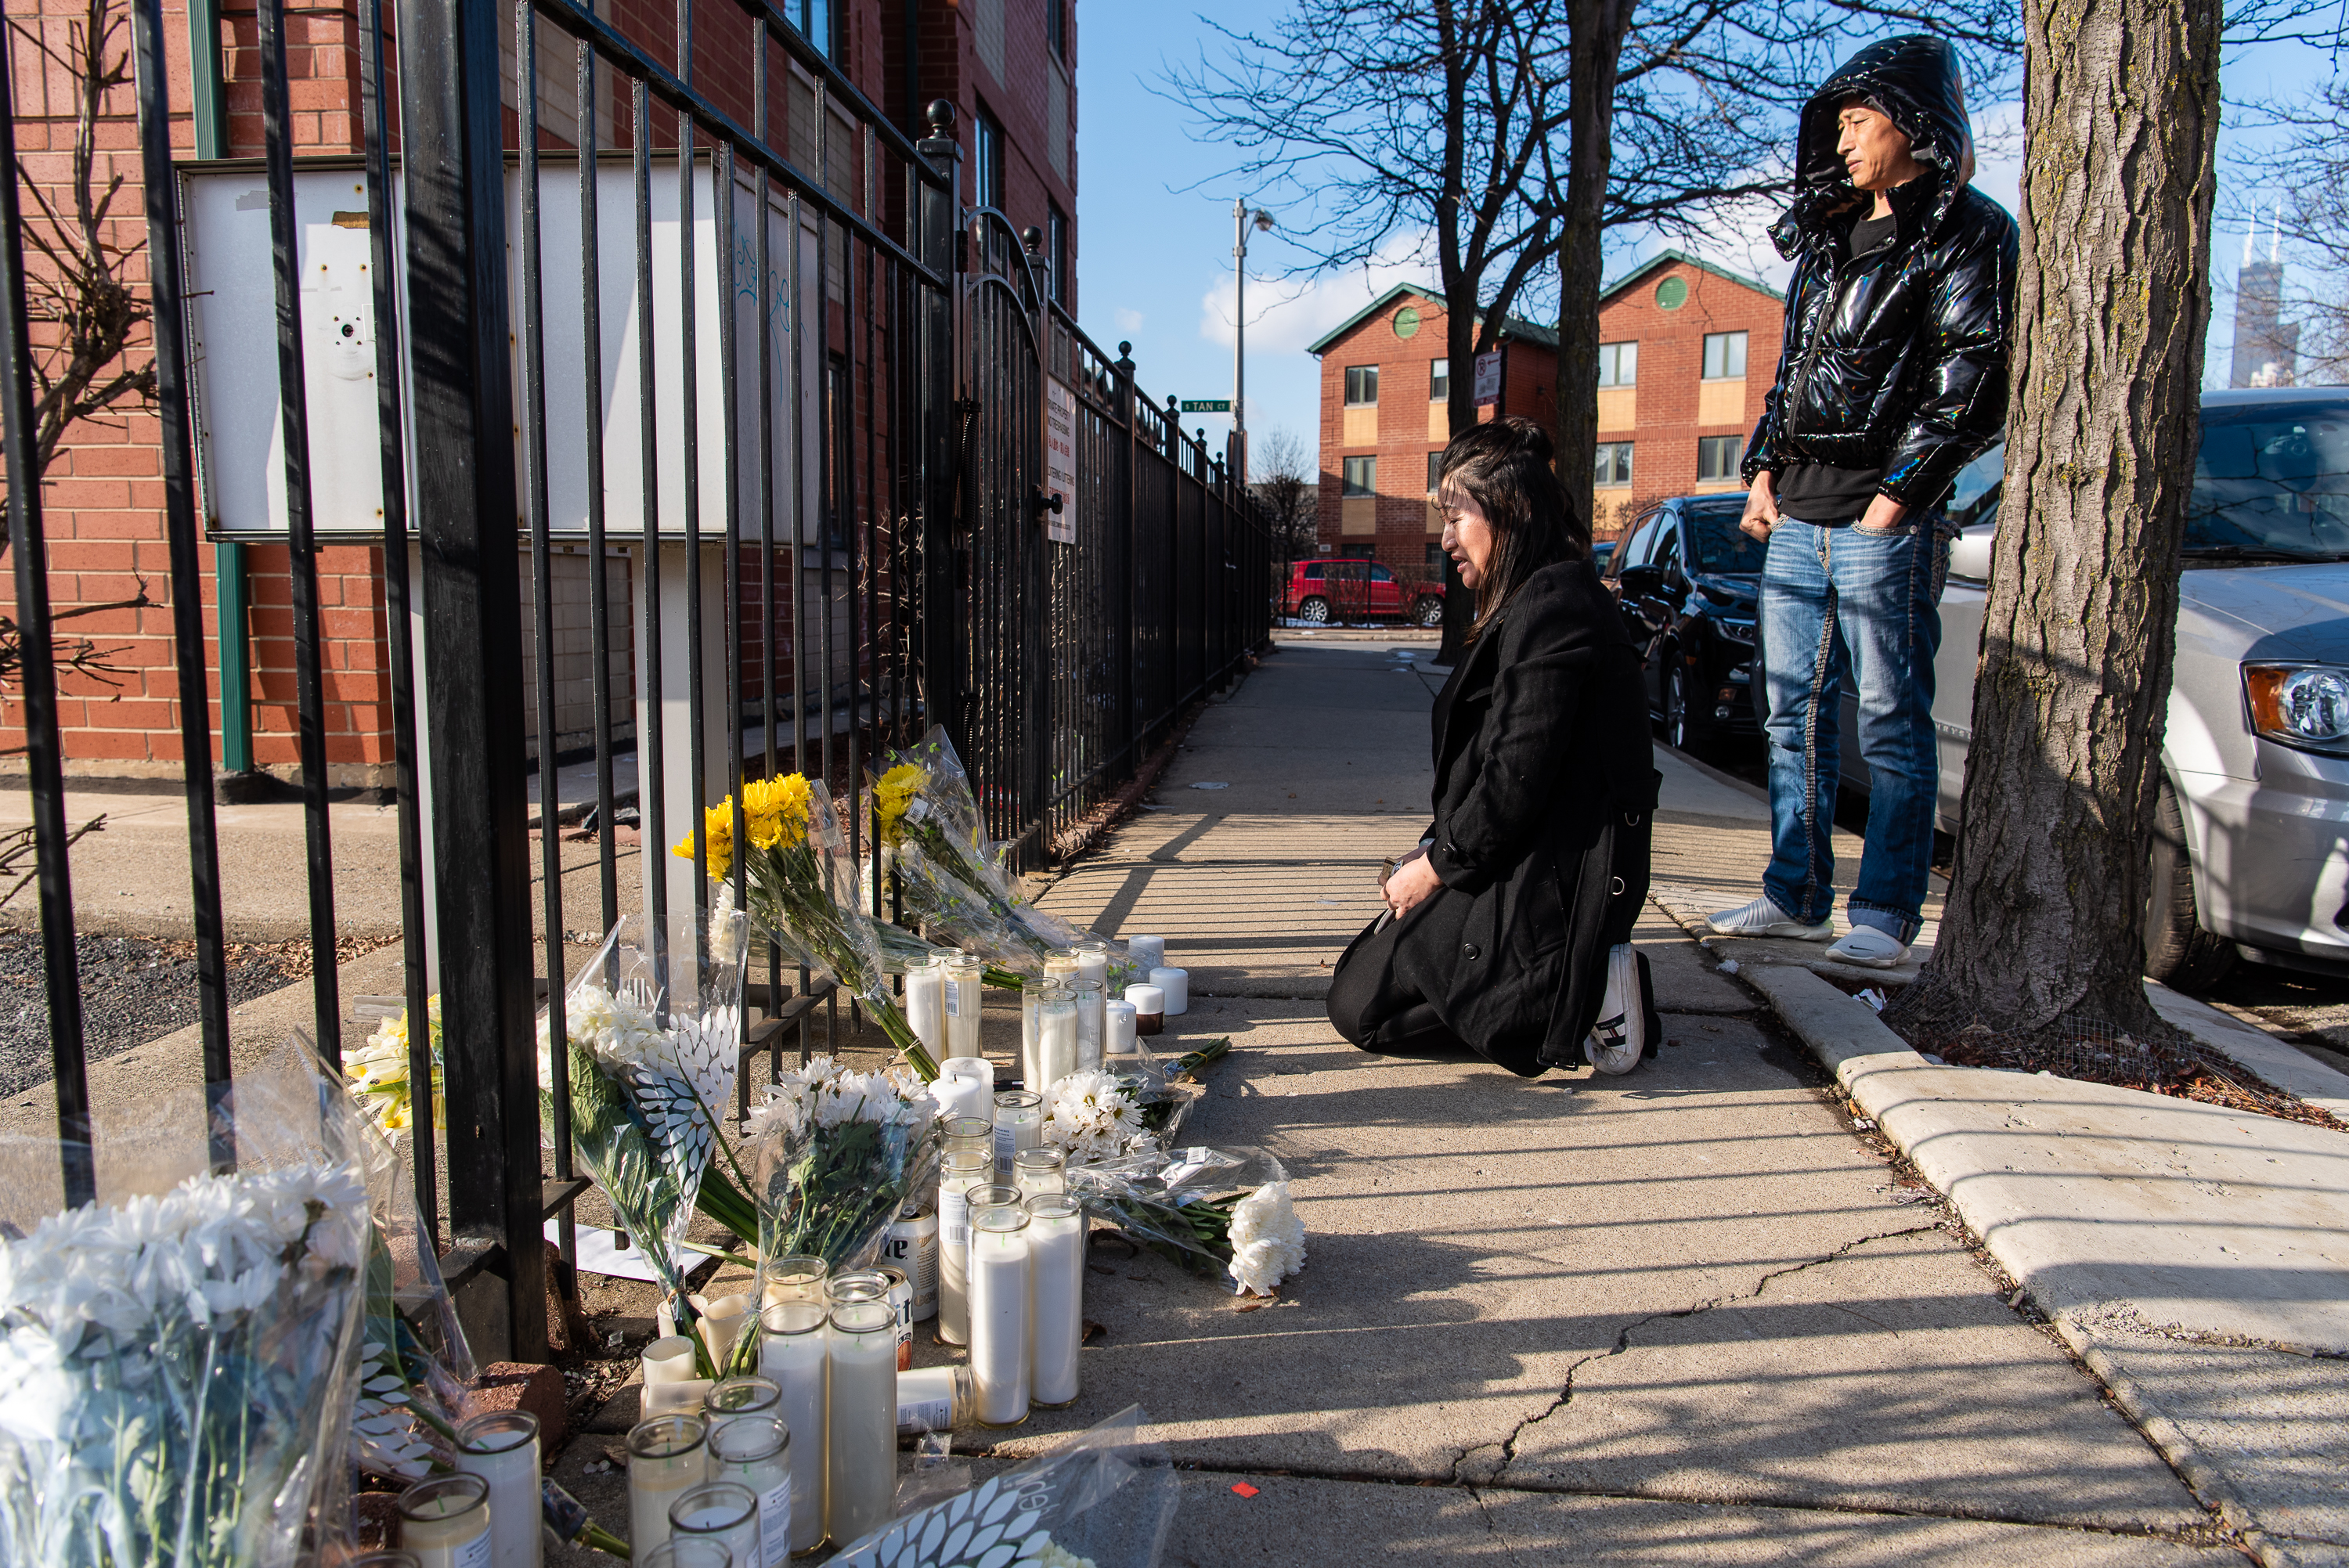 A young woman breaks down in front of a vigil that sits outside the apartment complex where Huayi Bian and Weizhong Xiong were murdered, Tuesday, Feb. 11, 2020, in Chicago. Bian and Xiong were murdered in an armed robbery Sunday morning.